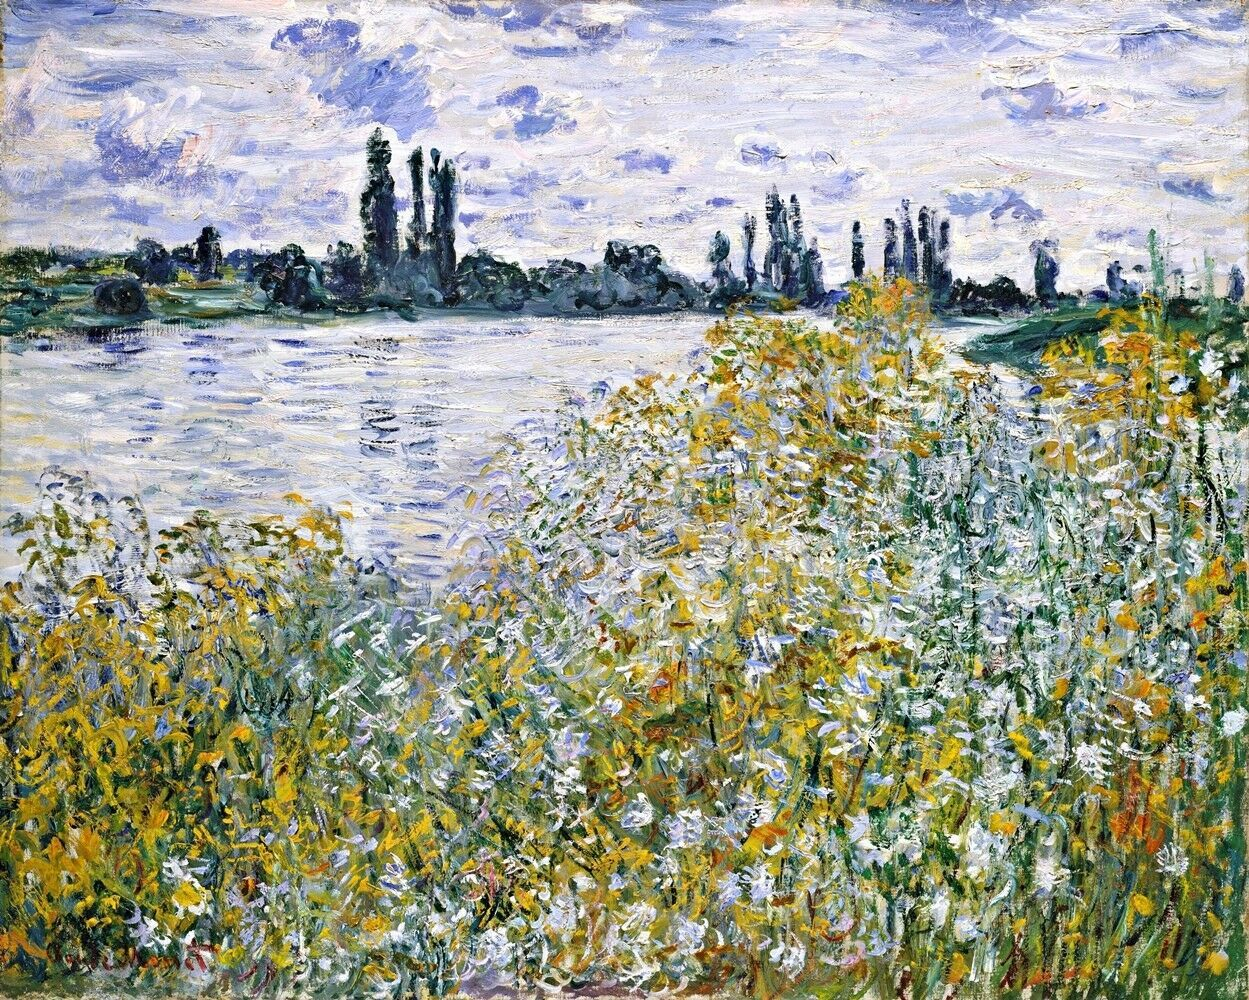 Primary image for Ile aux Fleurs near Vetheuil Painting by Claude Monet Art Reproduction